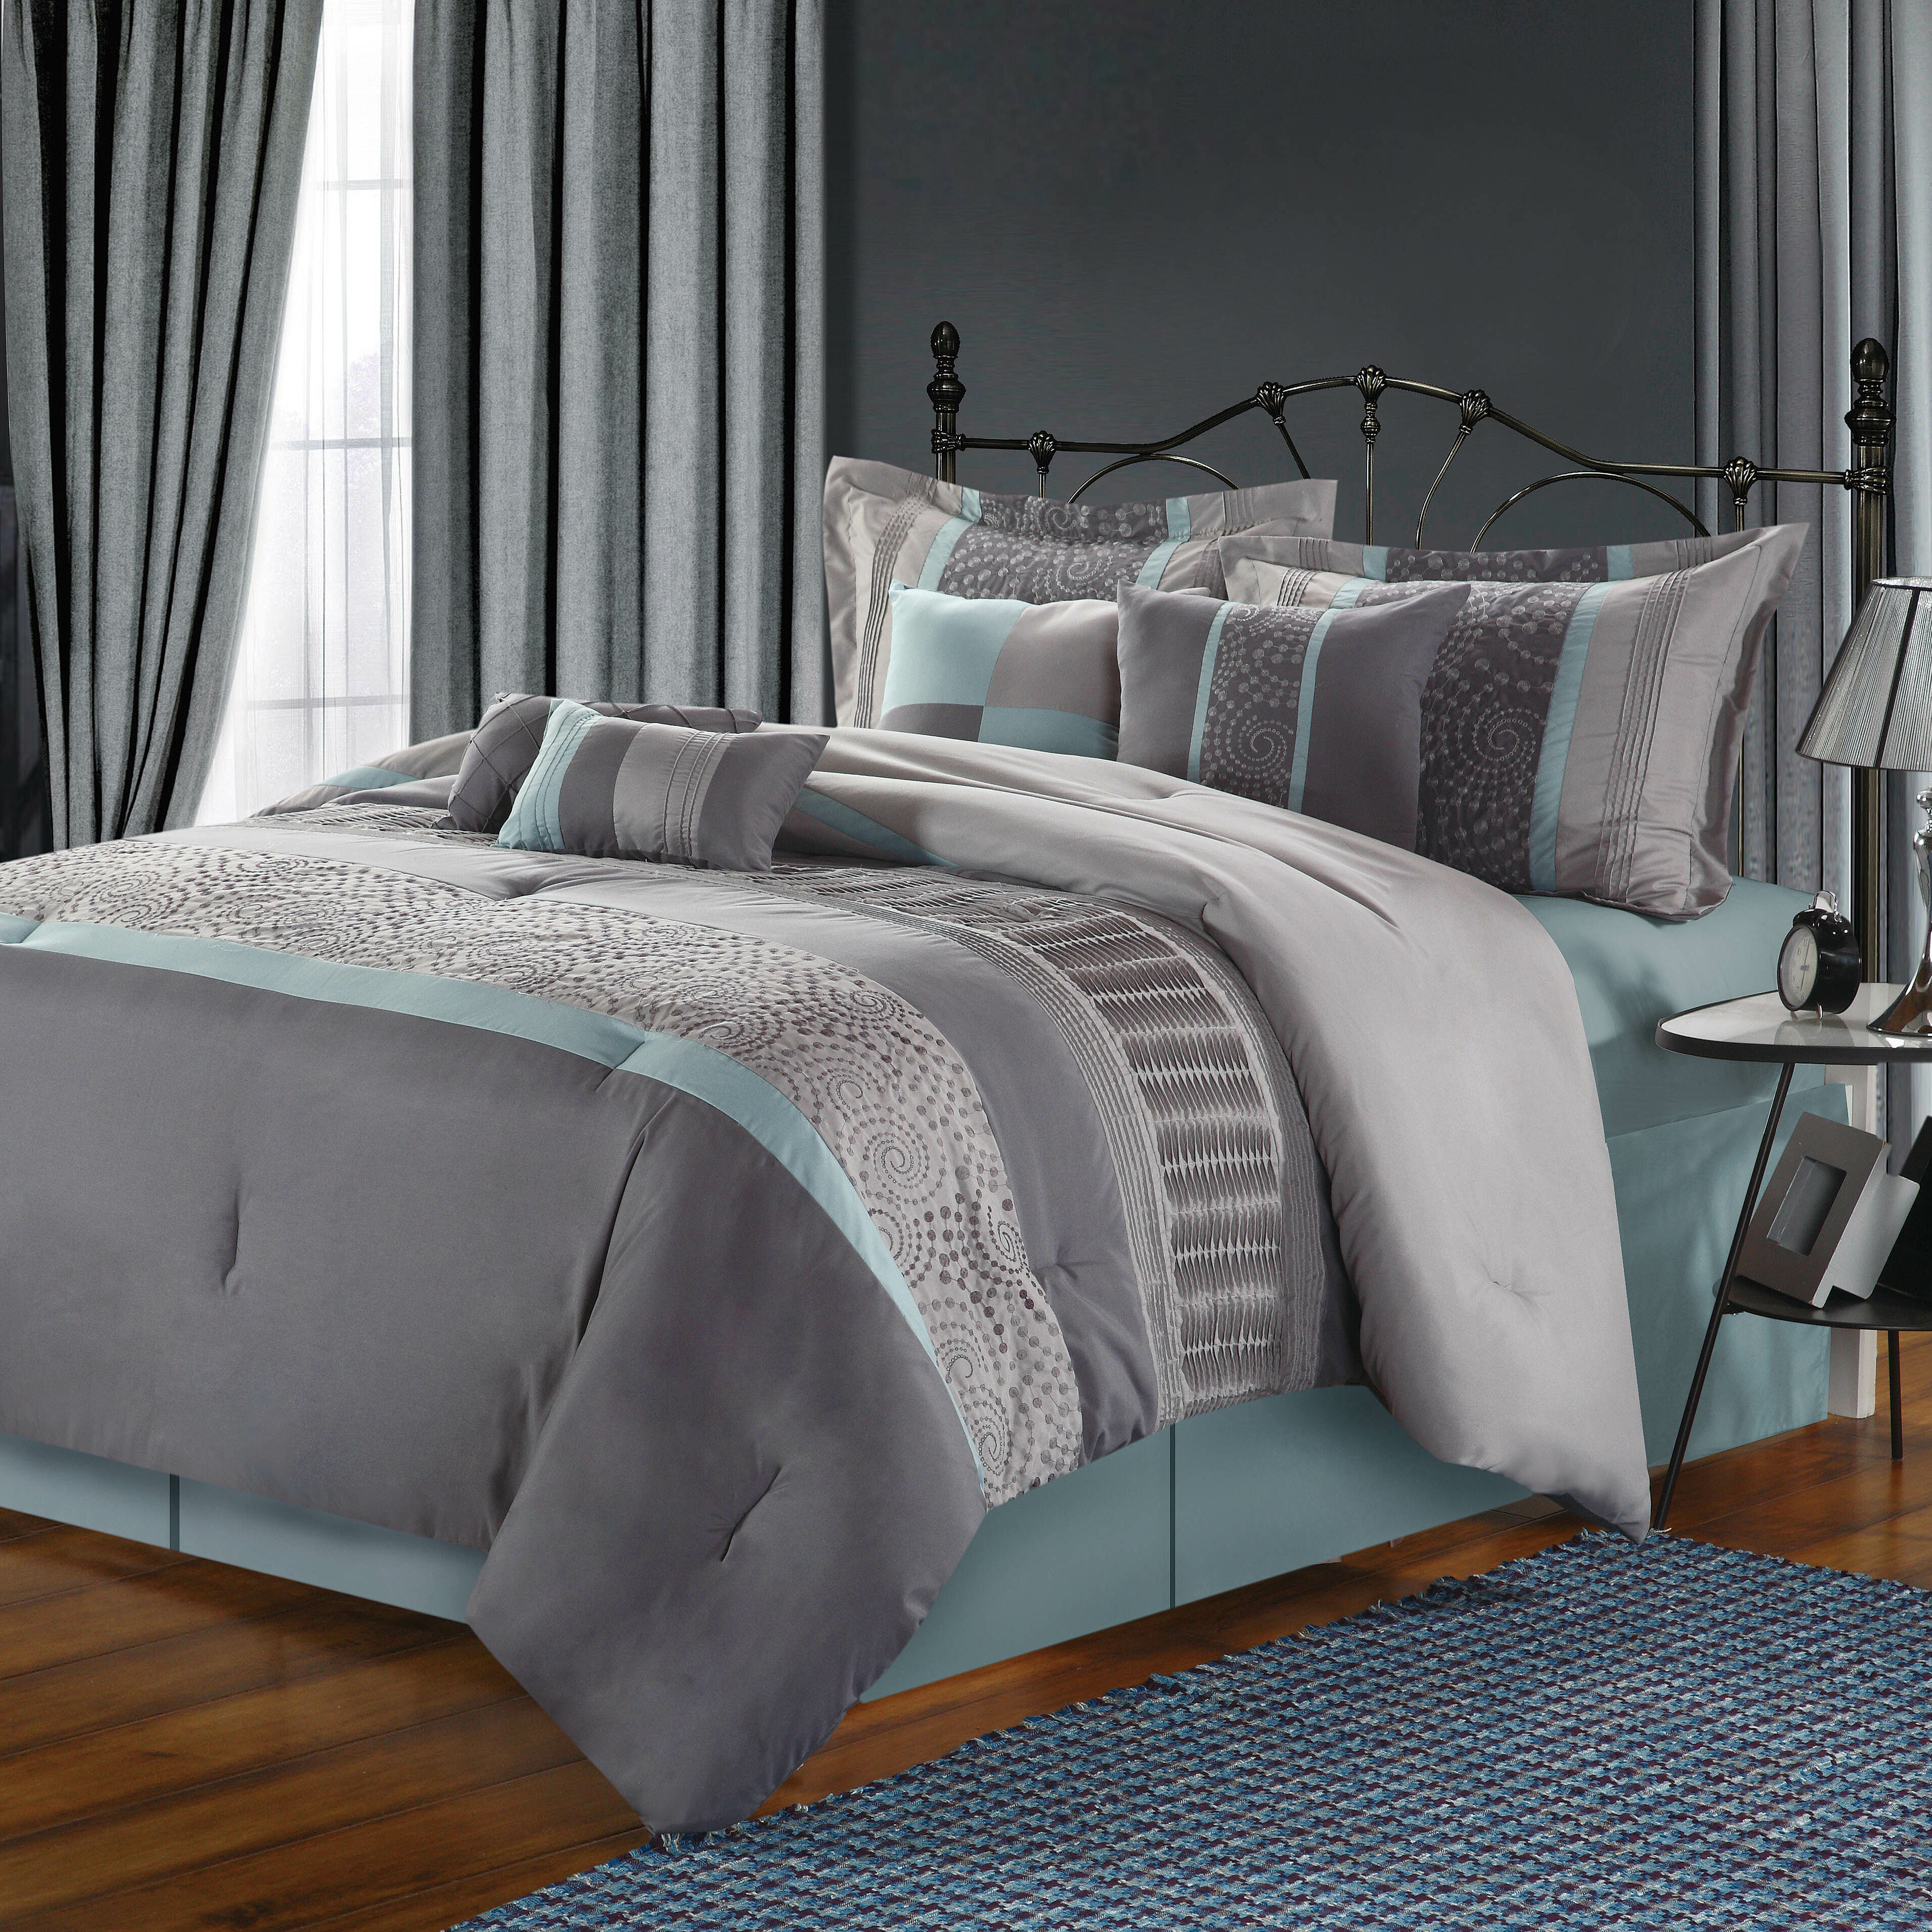 full fresh picture max sets marvelous studio set marshalls queen bed incredible miller lovely bedding quilt plaid of sheets herringbone nicole cotton